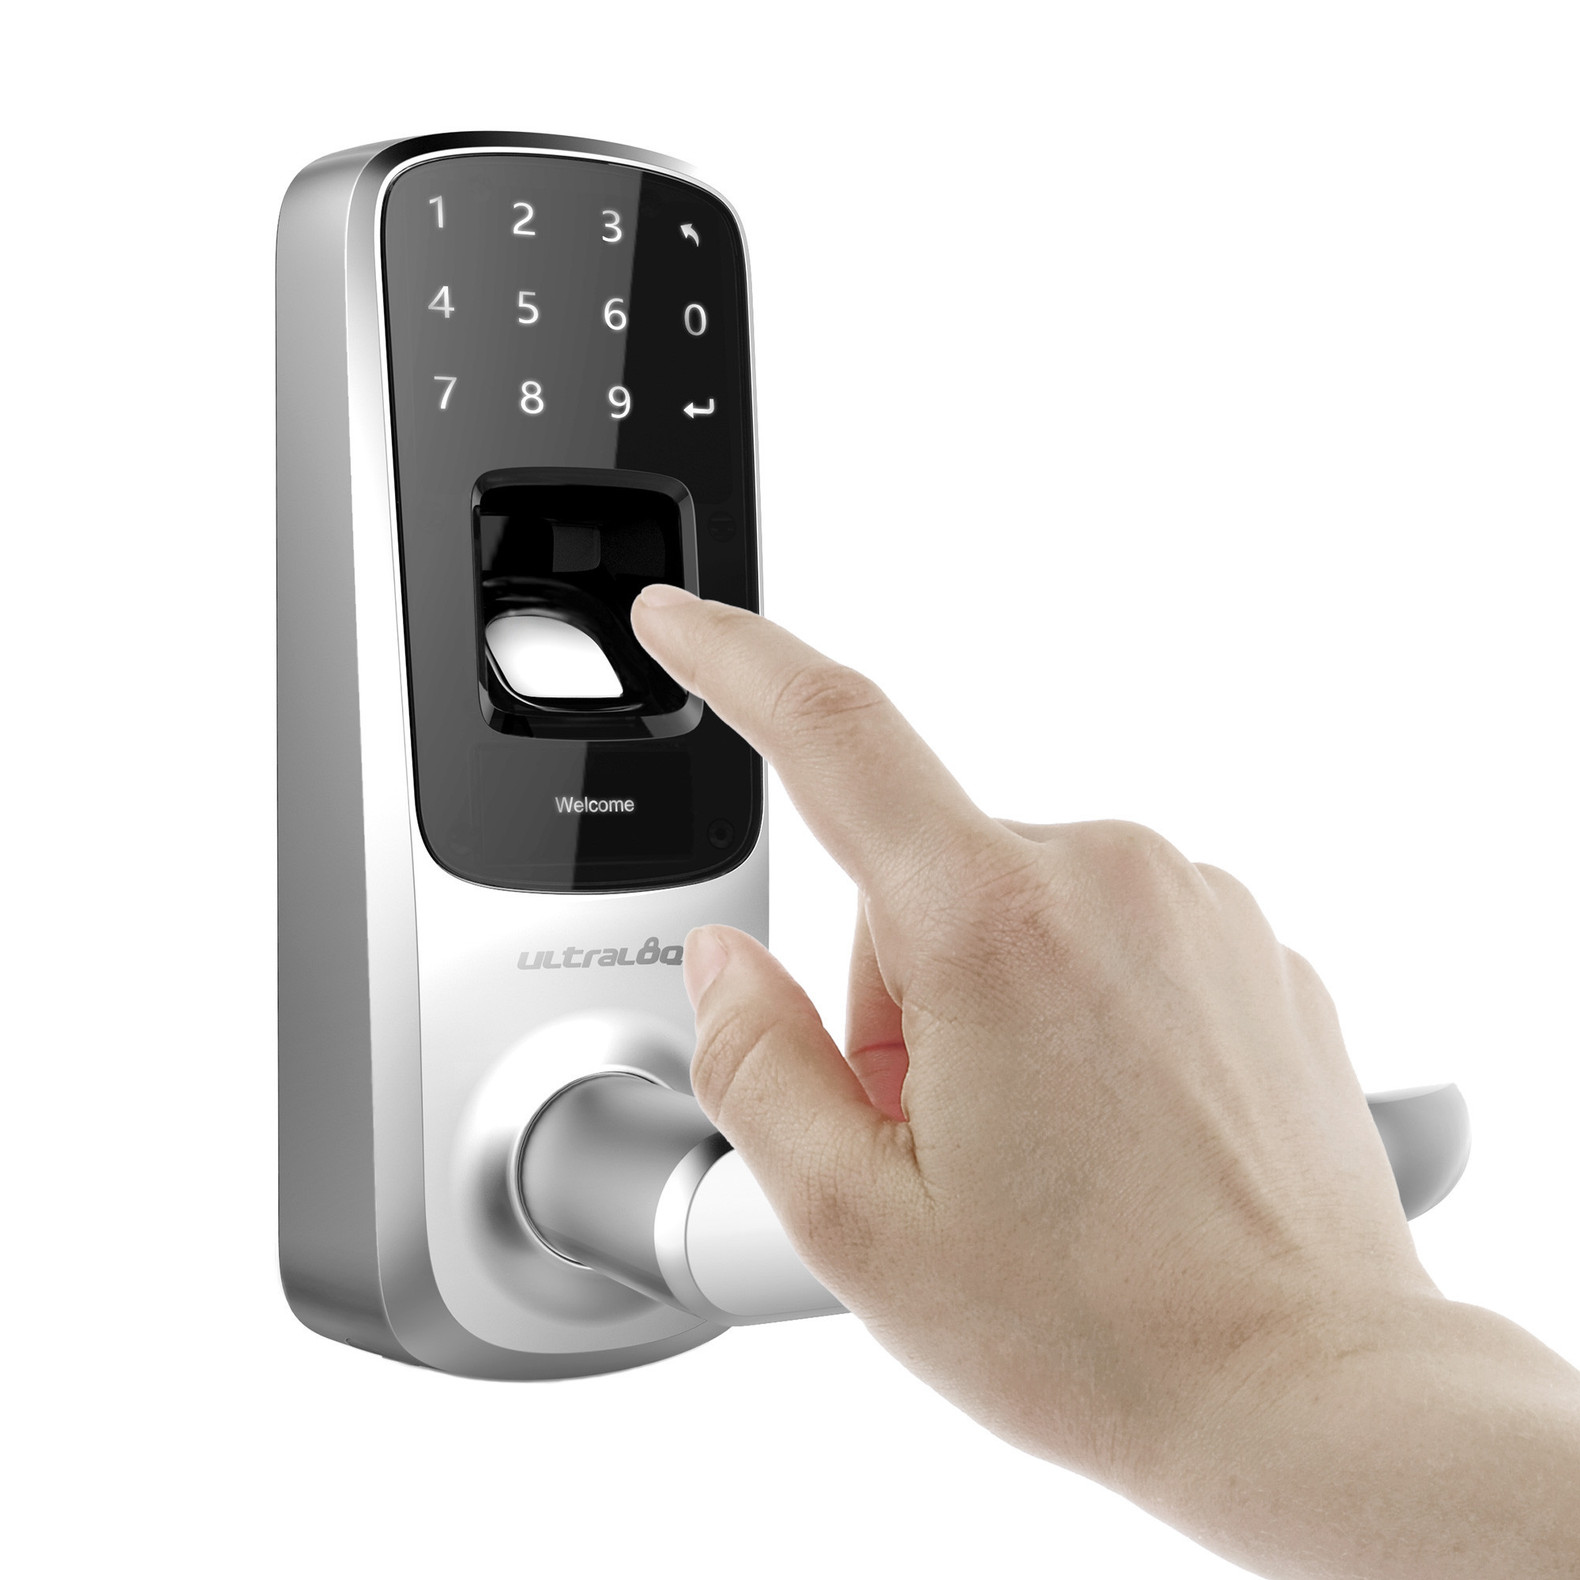 Fingerprint Locks